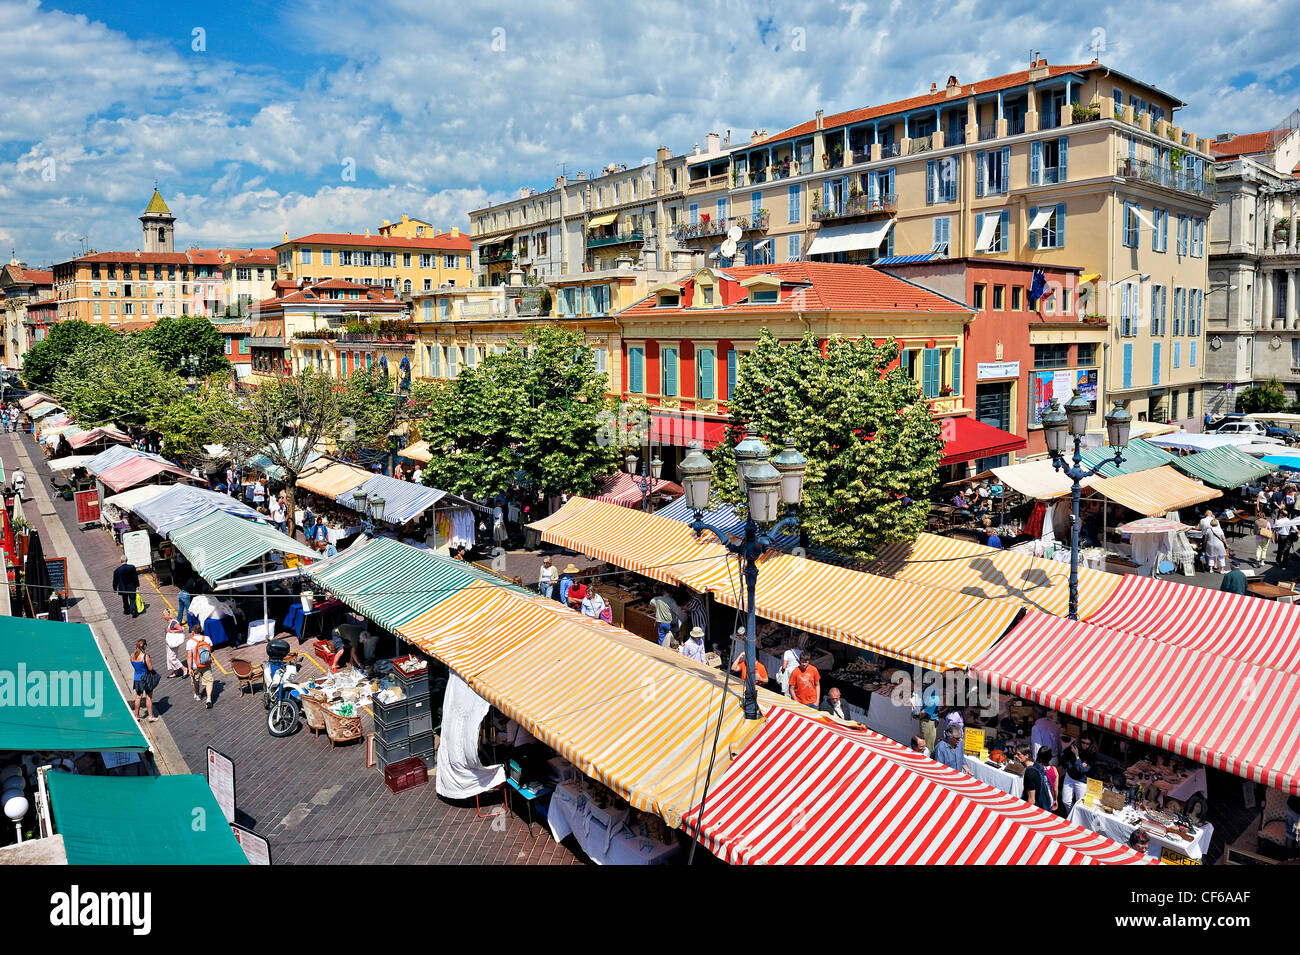 the flower market in the old town nice france stock photo 43780423 alamy. Black Bedroom Furniture Sets. Home Design Ideas